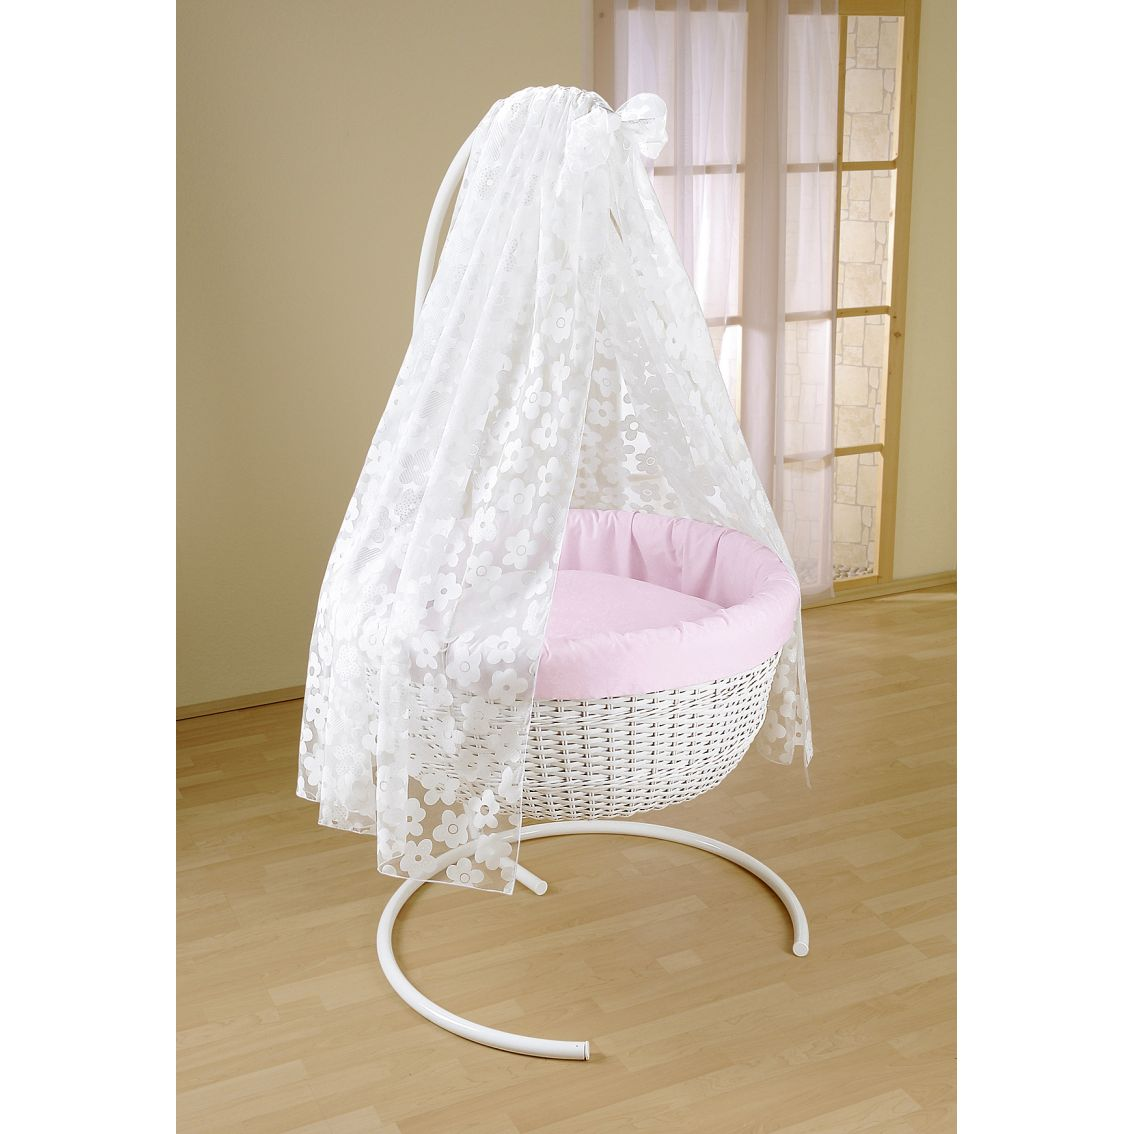 92 swinging cribs with drapes crib cradle bedding for Drape stand for crib